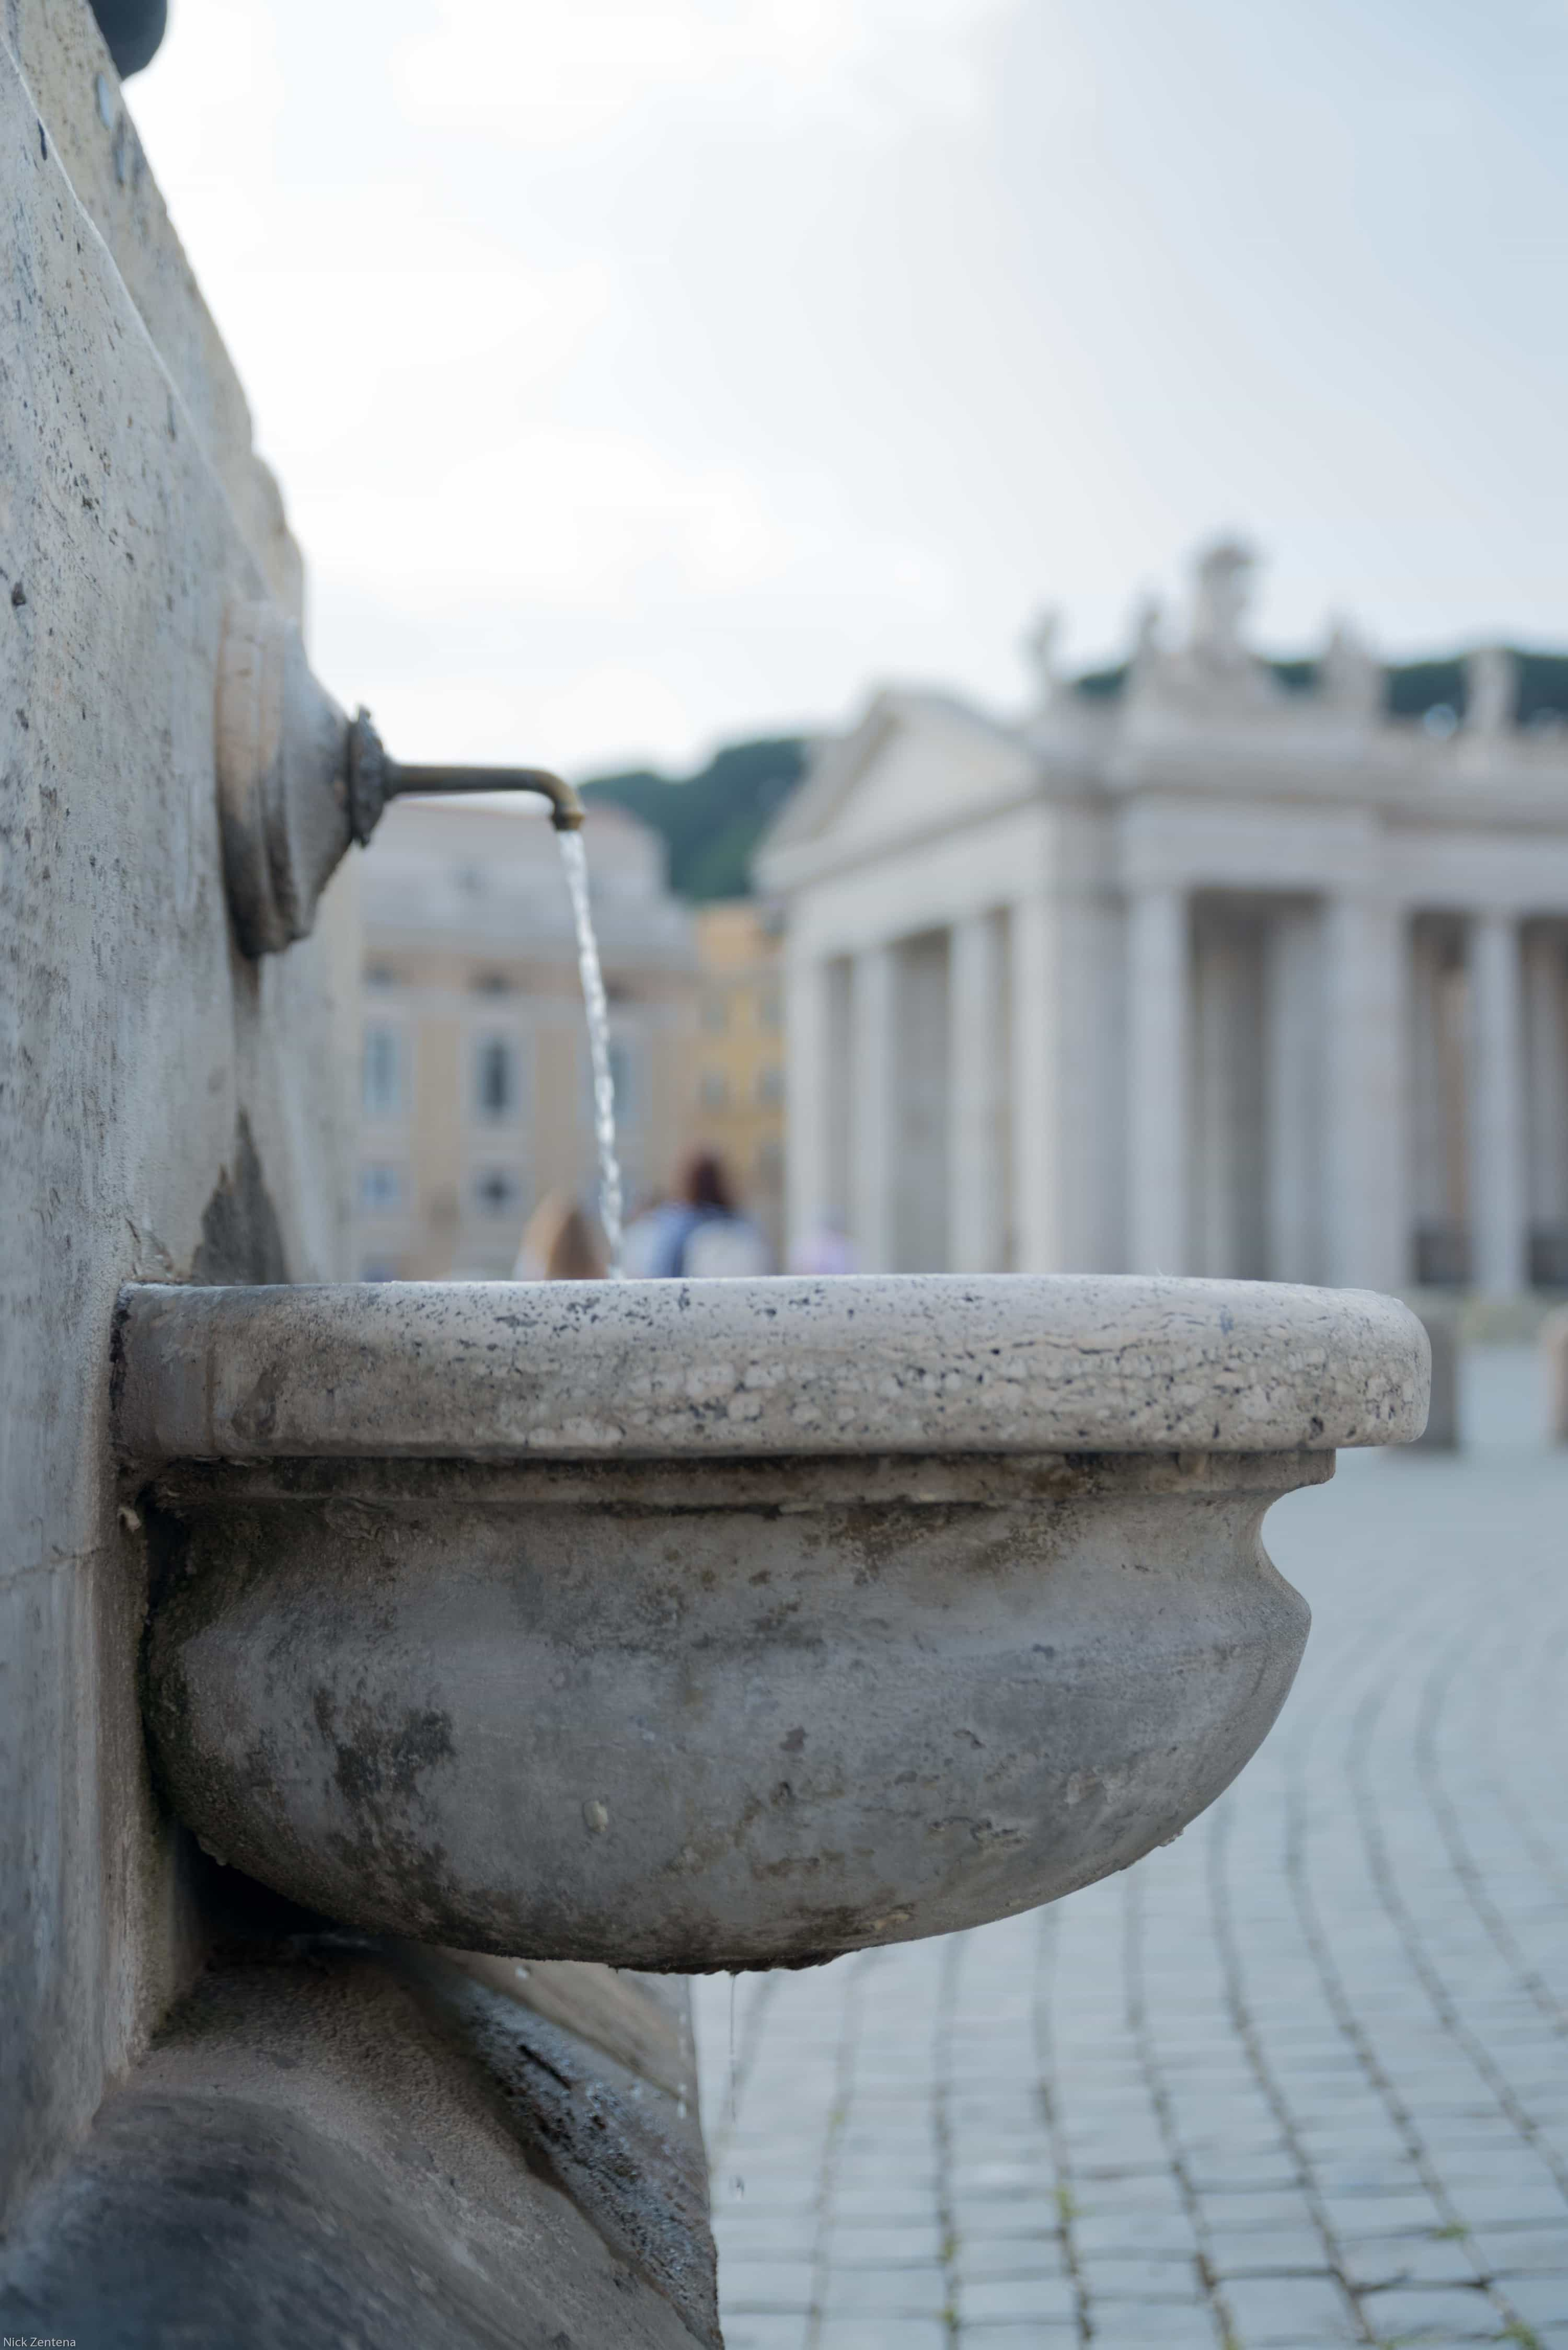 Drinking fountain in St. Peter's square